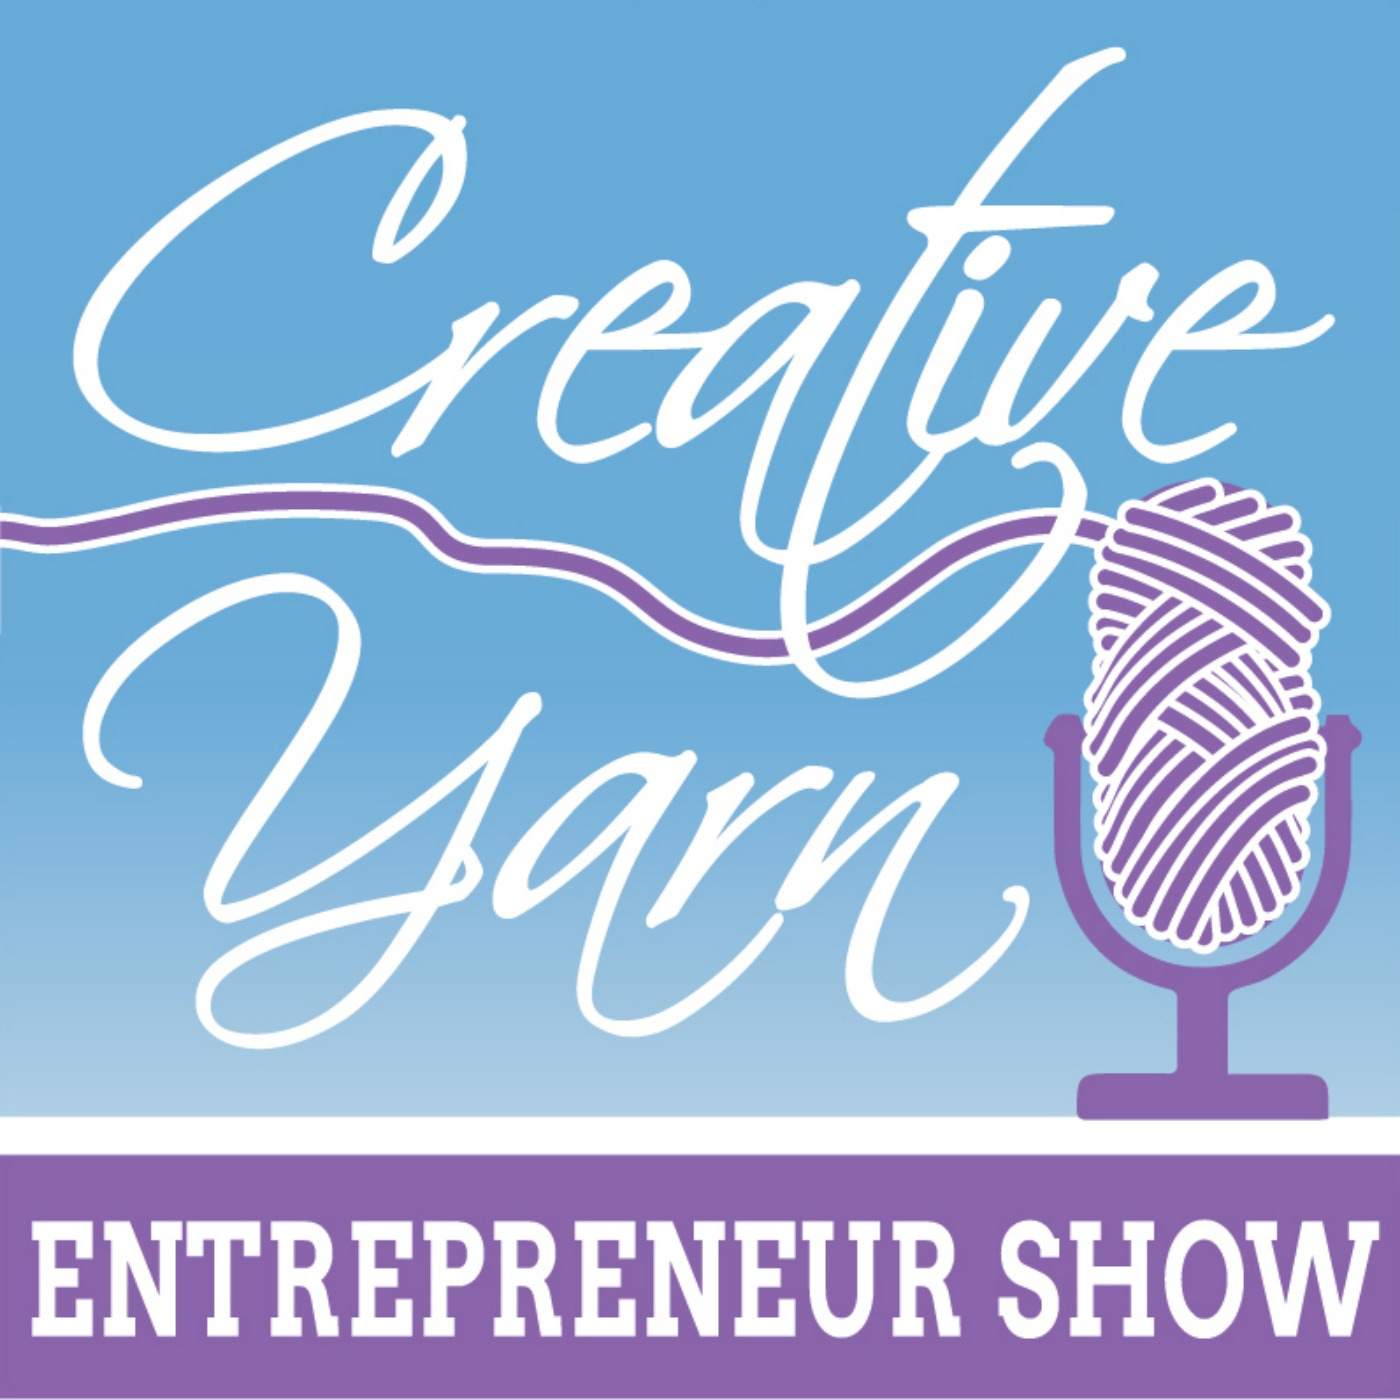 Episode 15: 6 Newbie's Tips for Getting Started on Google+ - The Creative Yarn Entrepreneur Show